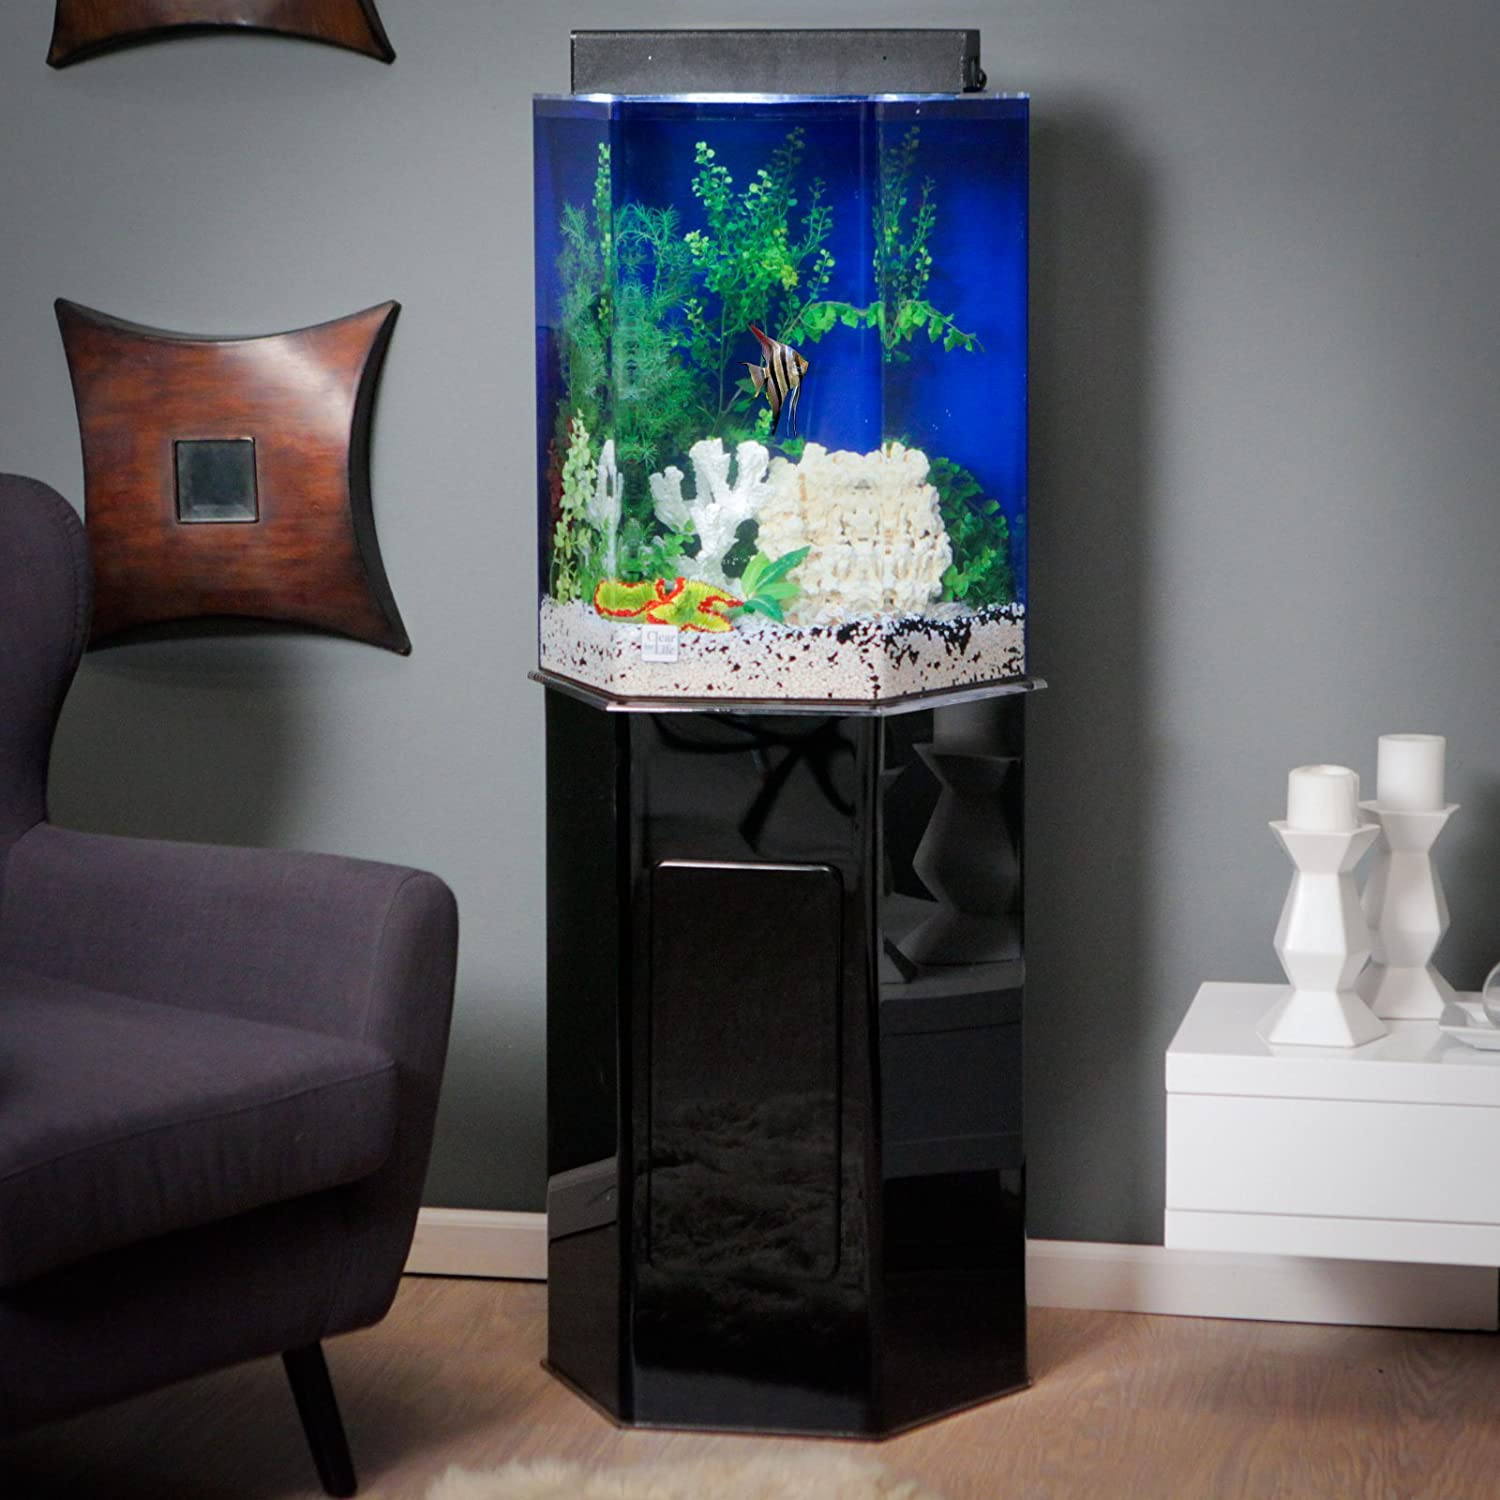 Amazon.com : Clear For Life 95 Hexagon Aquarium   Clear Back : Pet Supplies